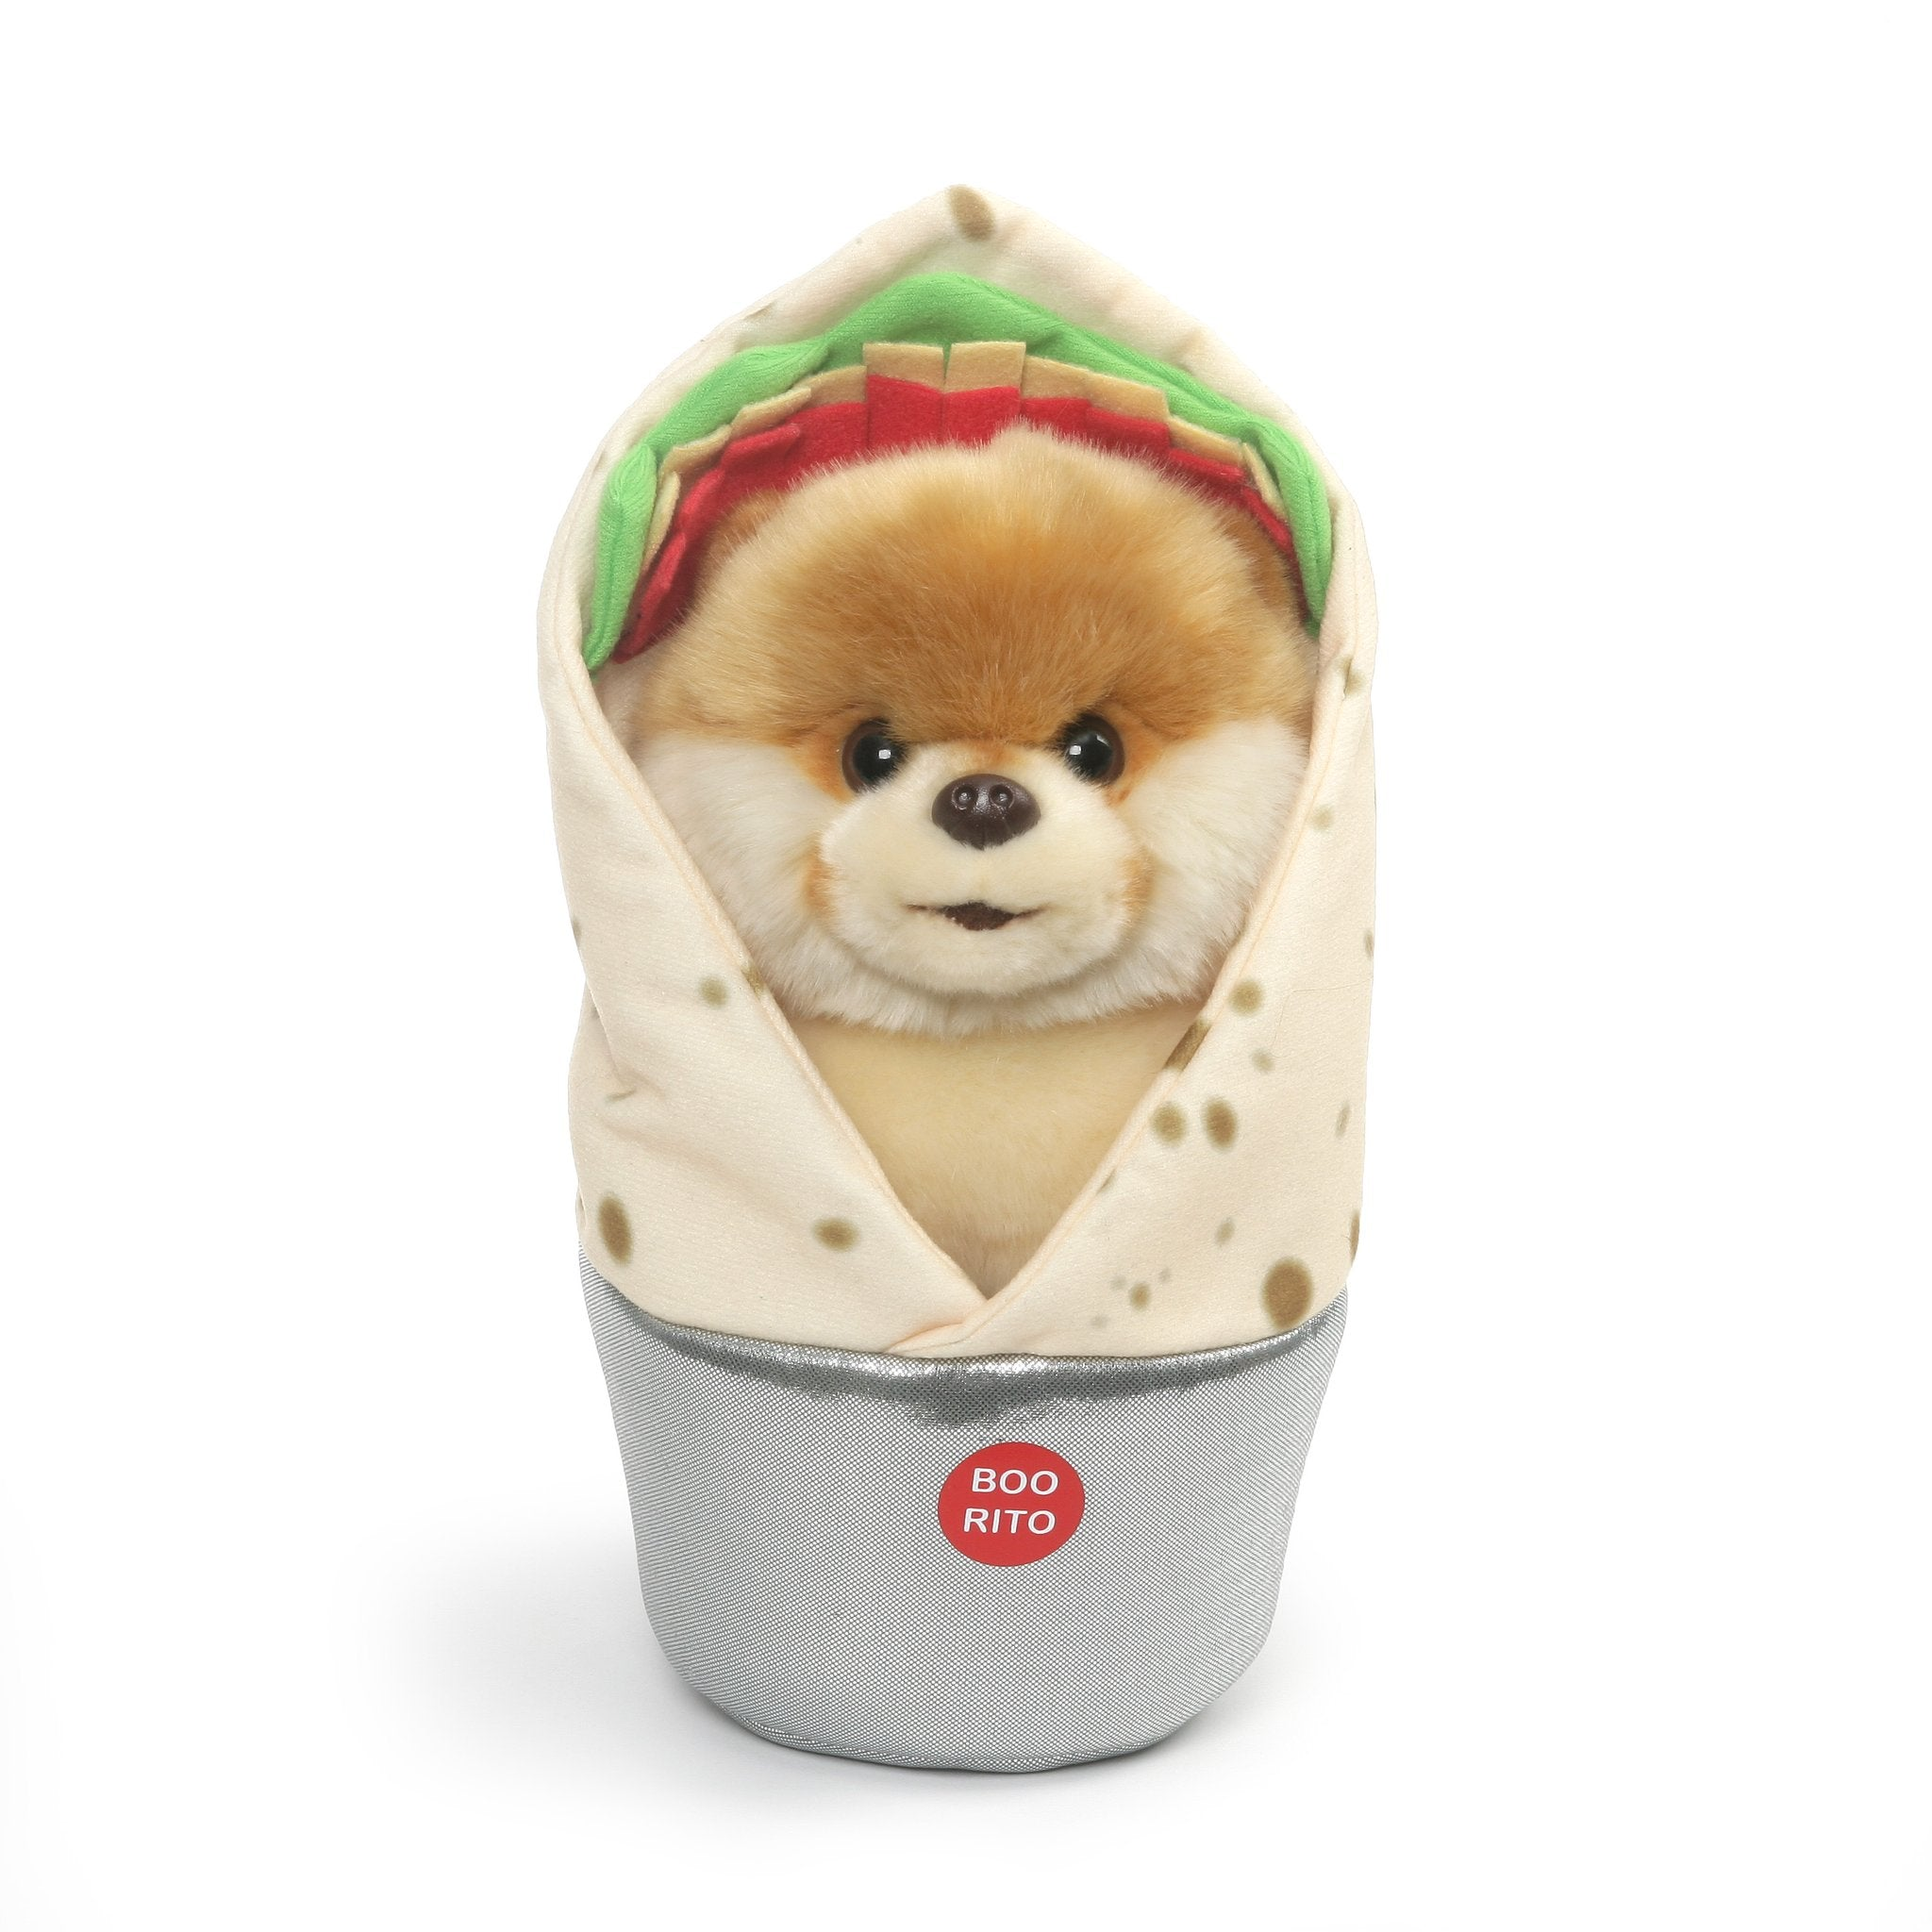 "Boo Cutest Dog Boo-rrito 9"" Plush"